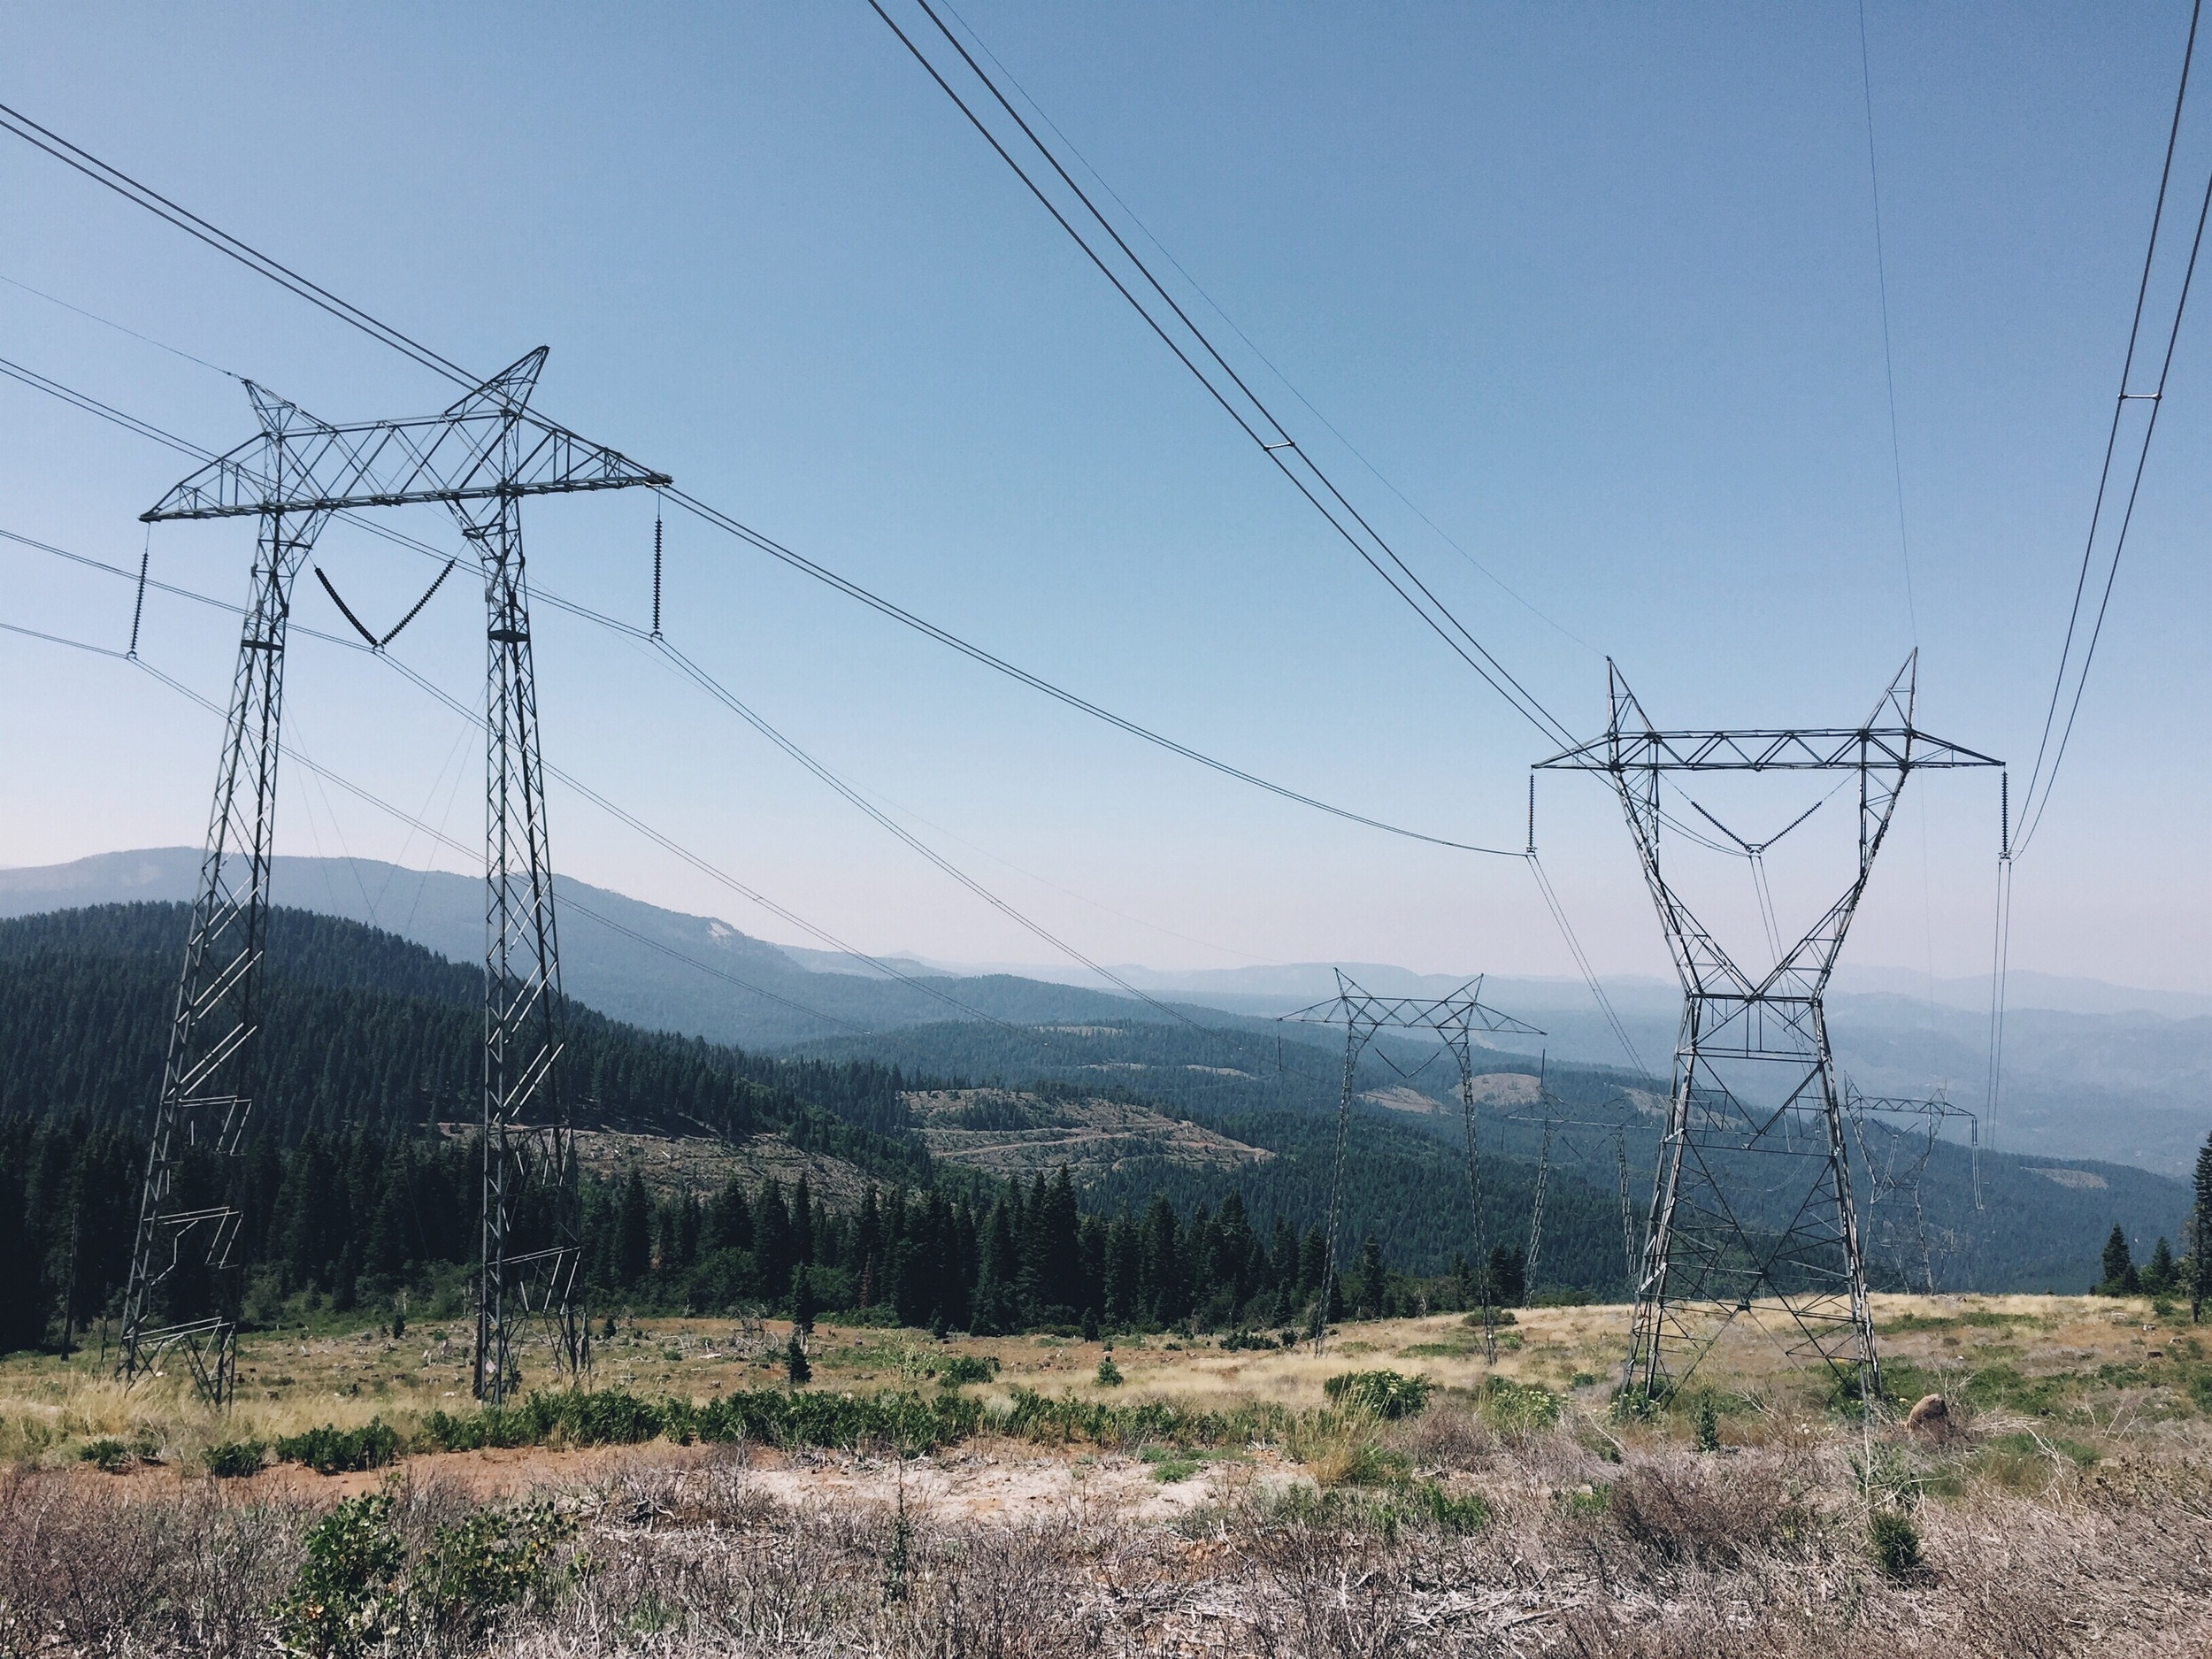 Power lines and haze from all the heat.